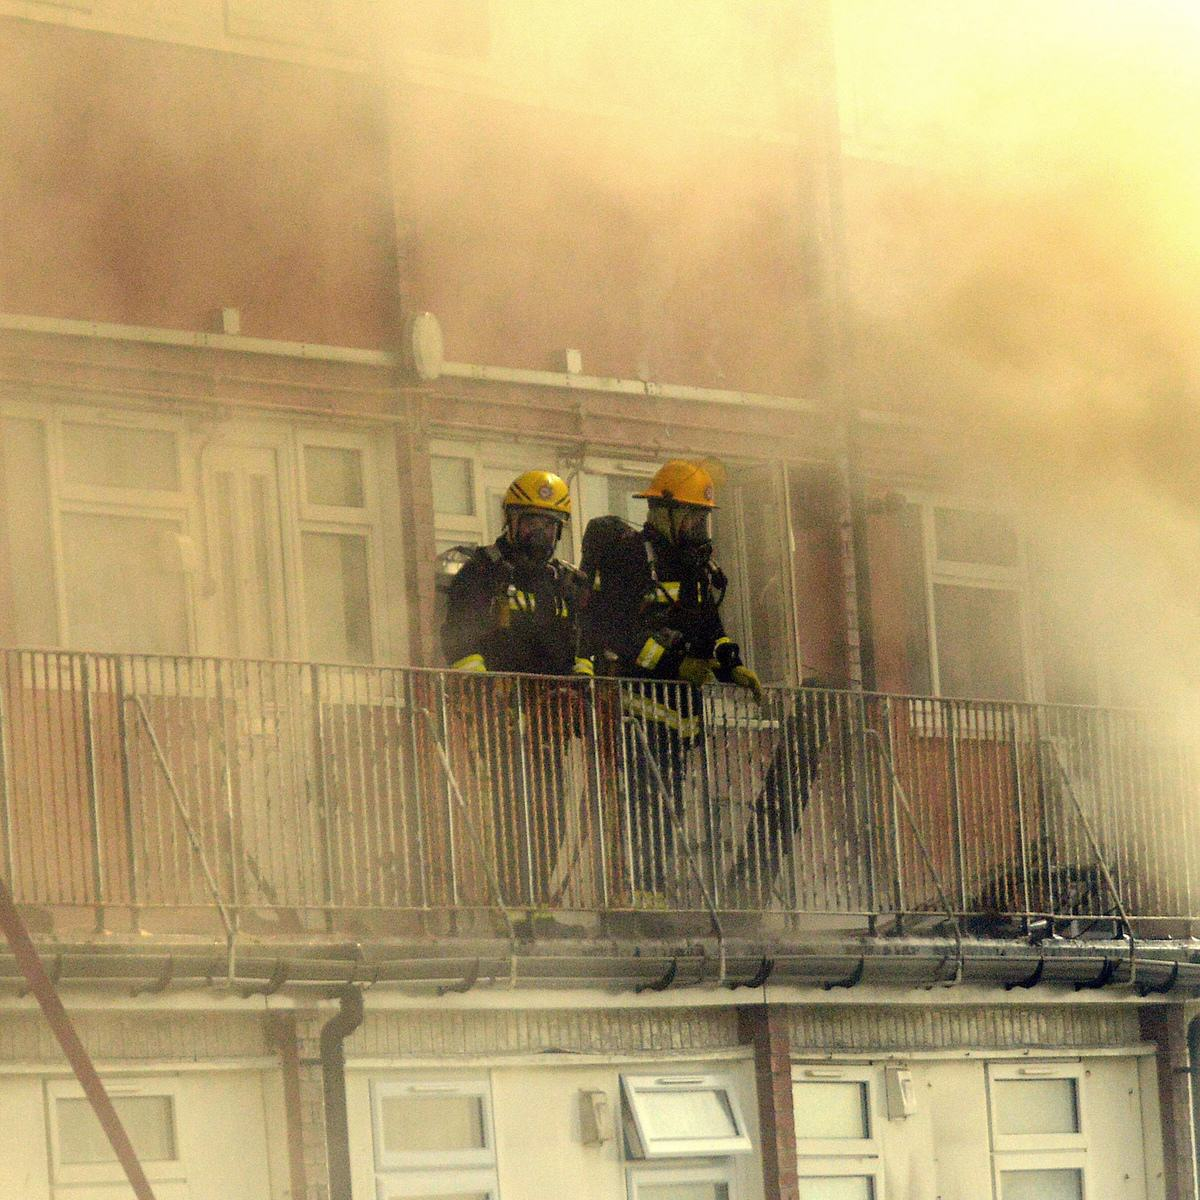 Boy Tries To Recreate Science Experiment, Burns Down Block Of Flats Causing £3m Damage UNILAD SWNS FLAT FIRE 0171092